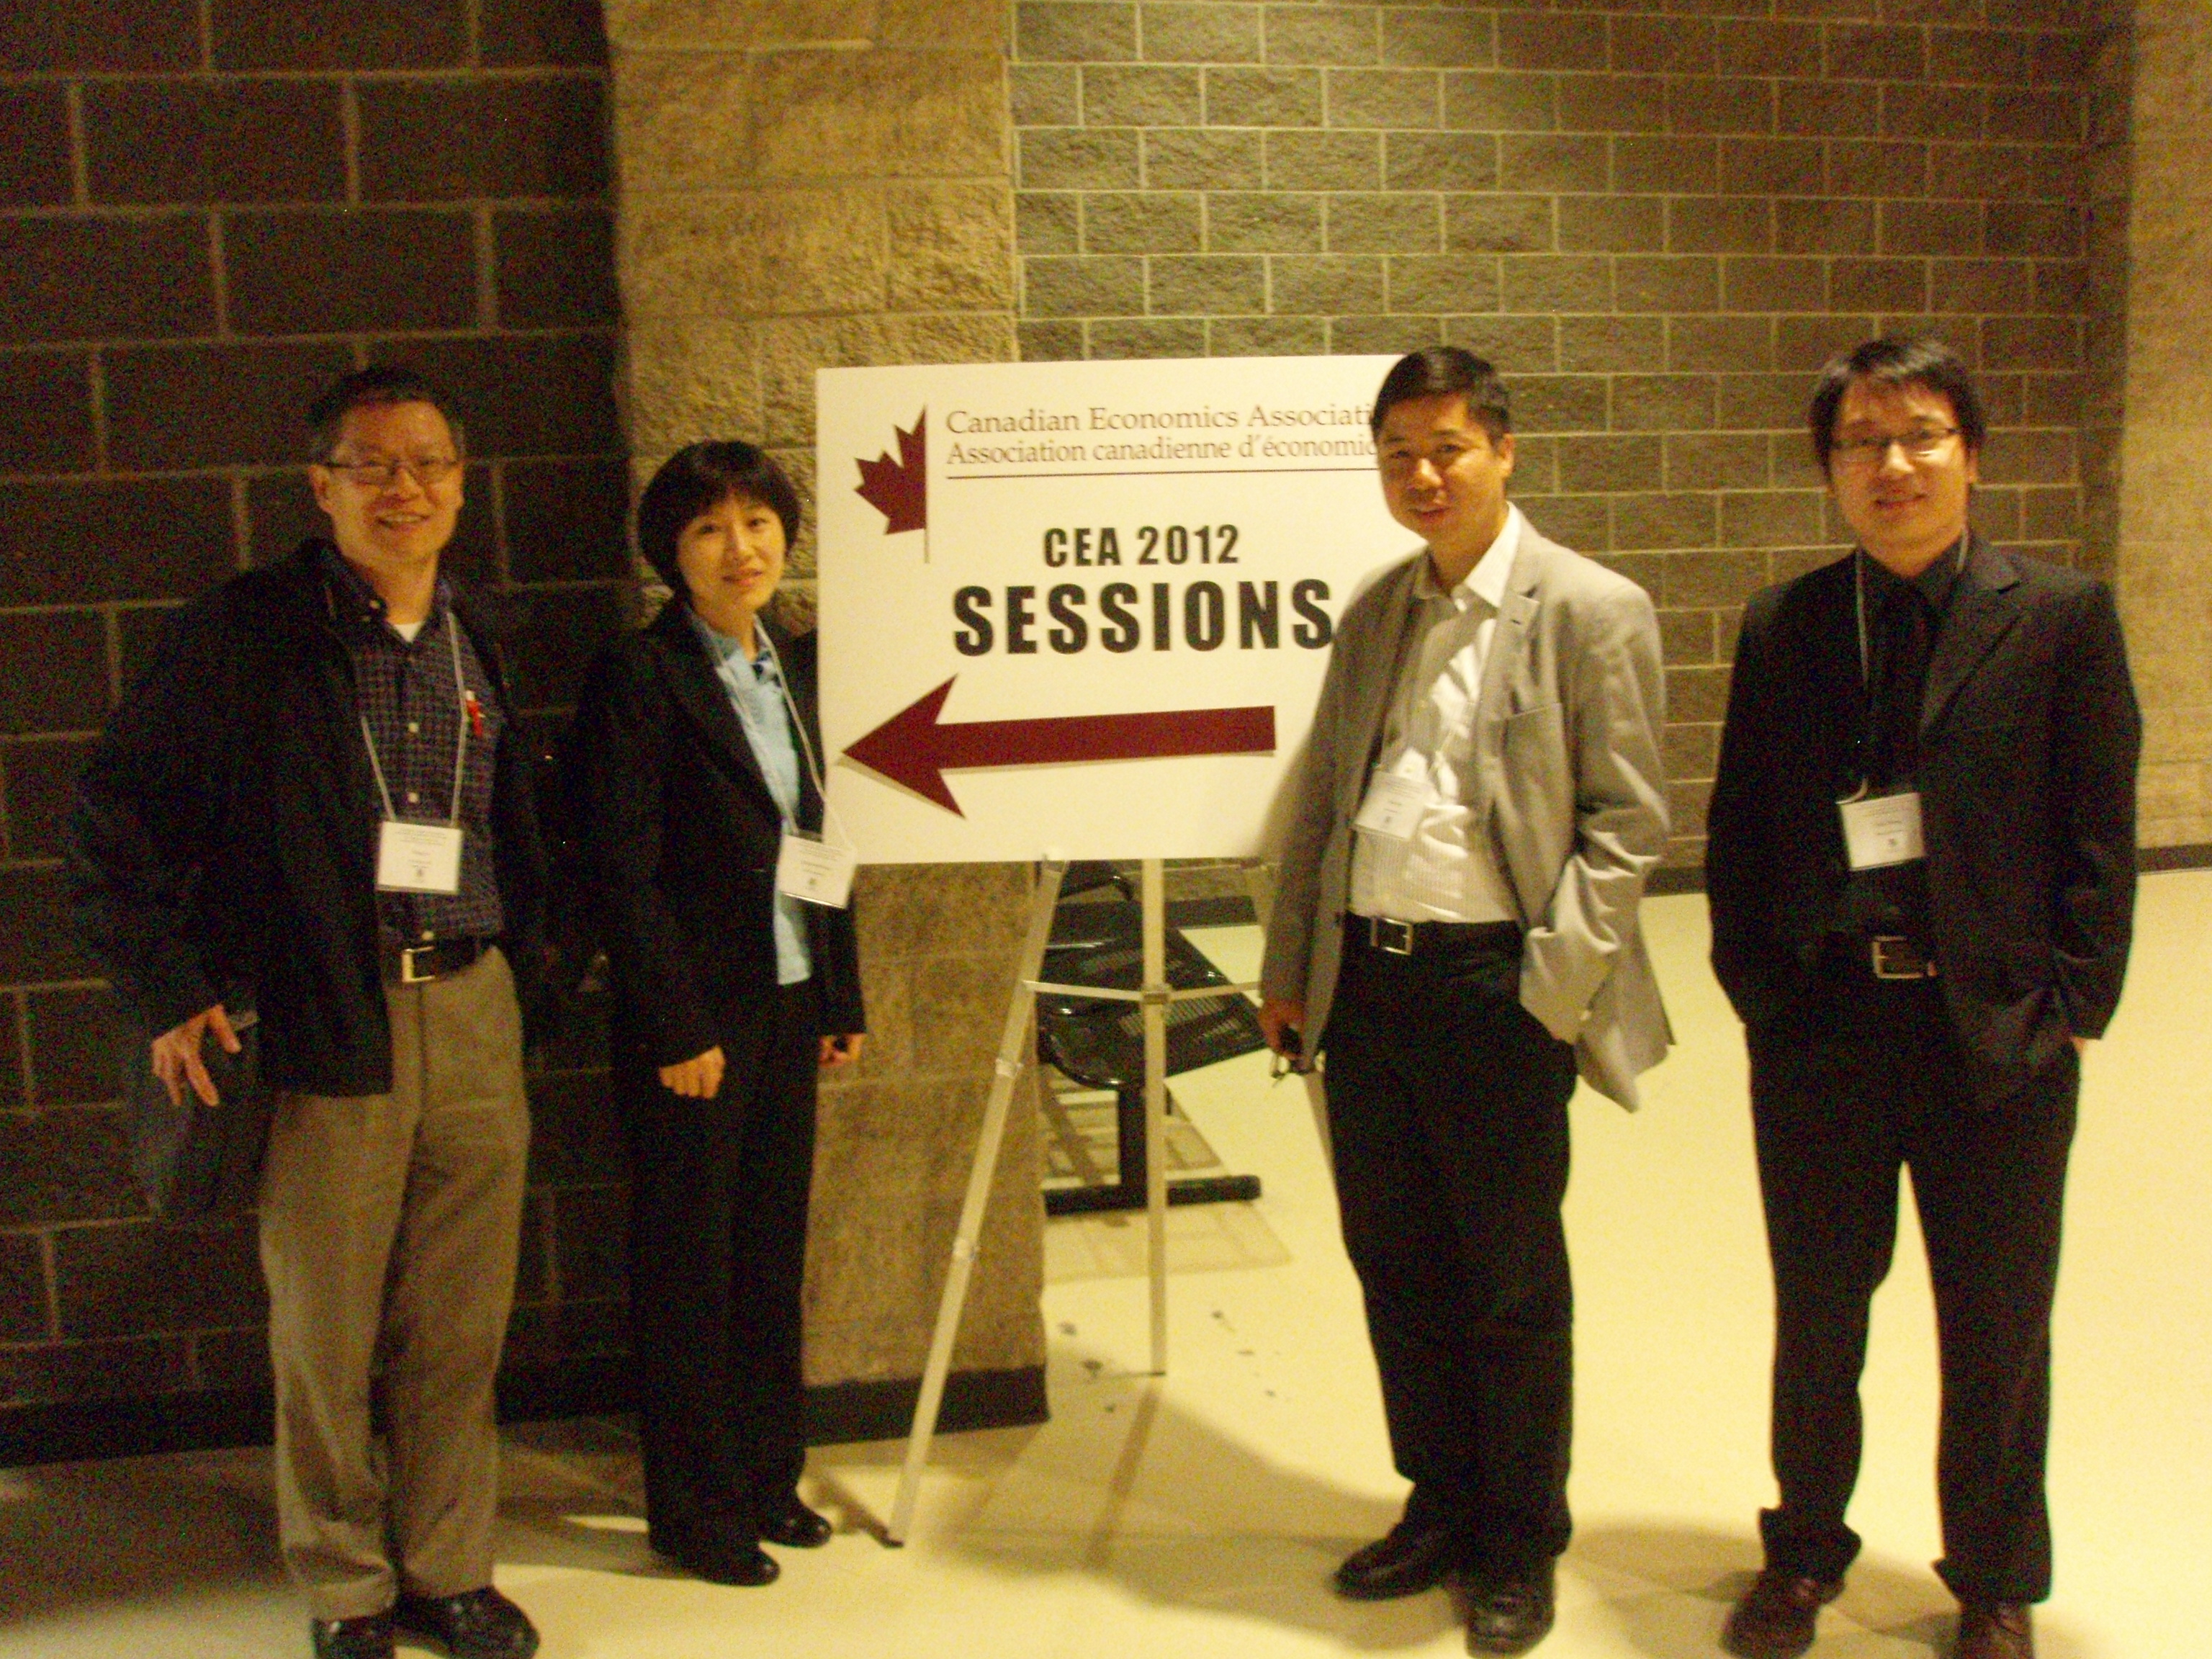 CES held first session at the Canadian Economics Association, Calgary